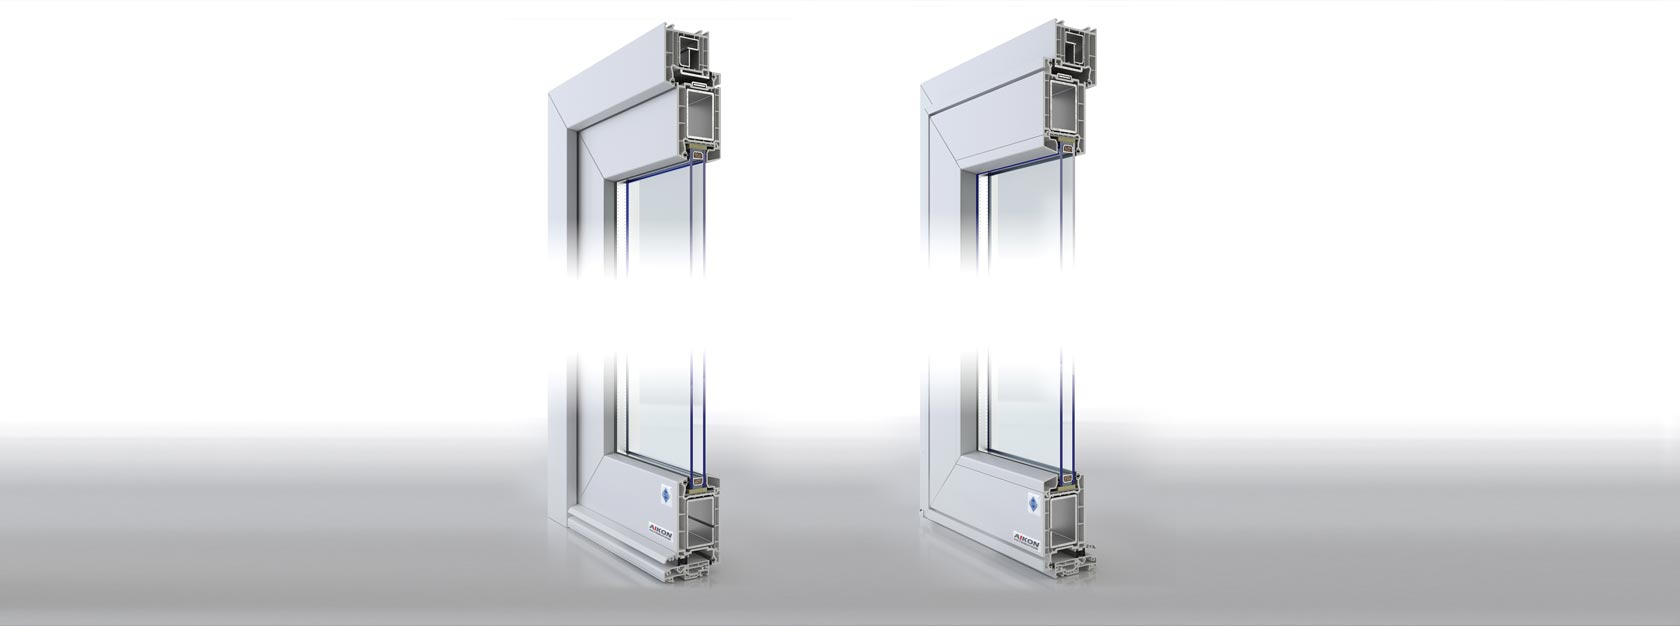 Veka front doors - affordable price